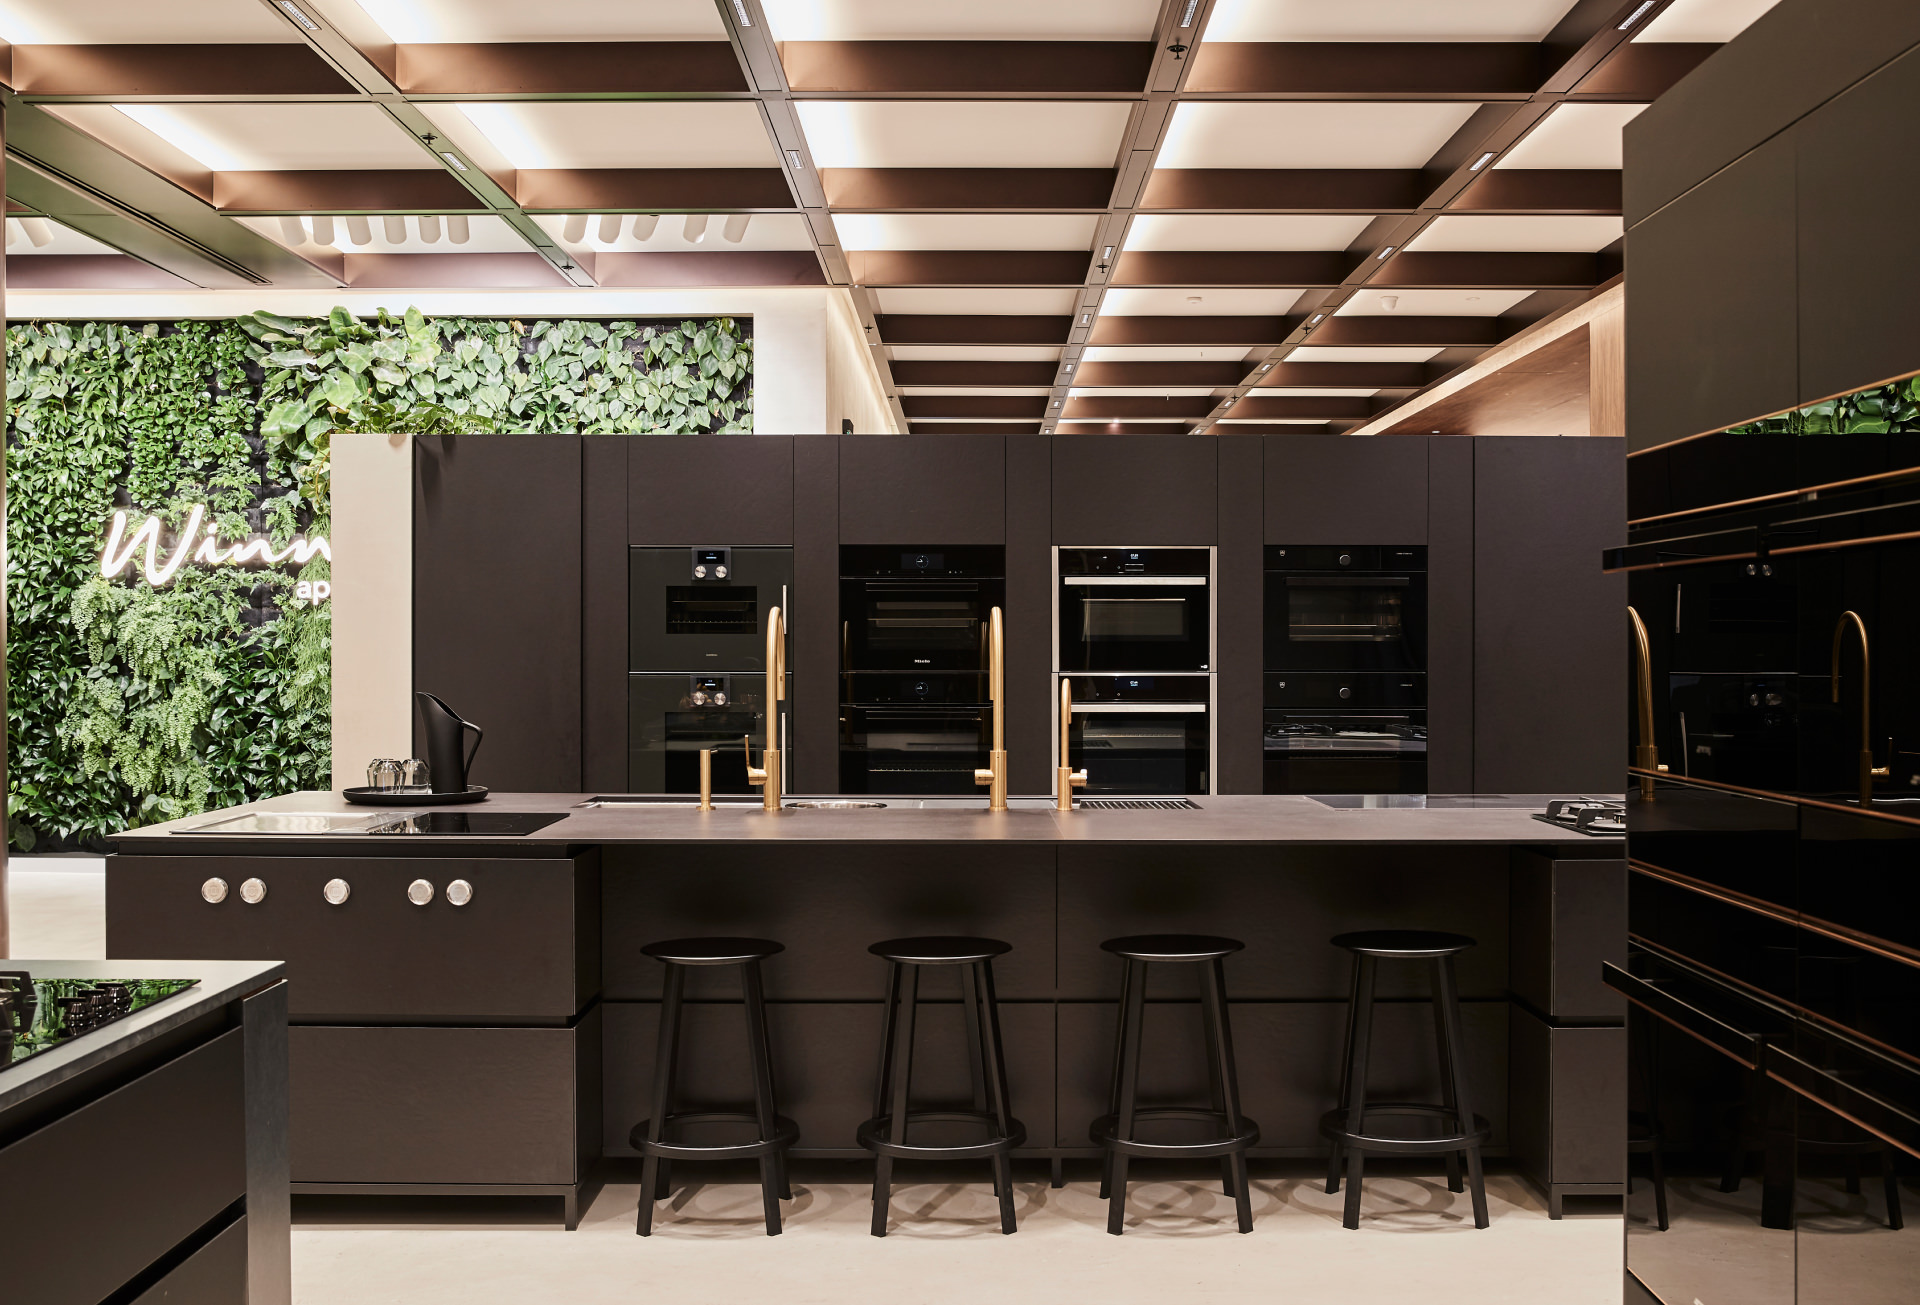 Cera Stribley Architecture Interior Design Winning Appliances Chadstone black kitchen display